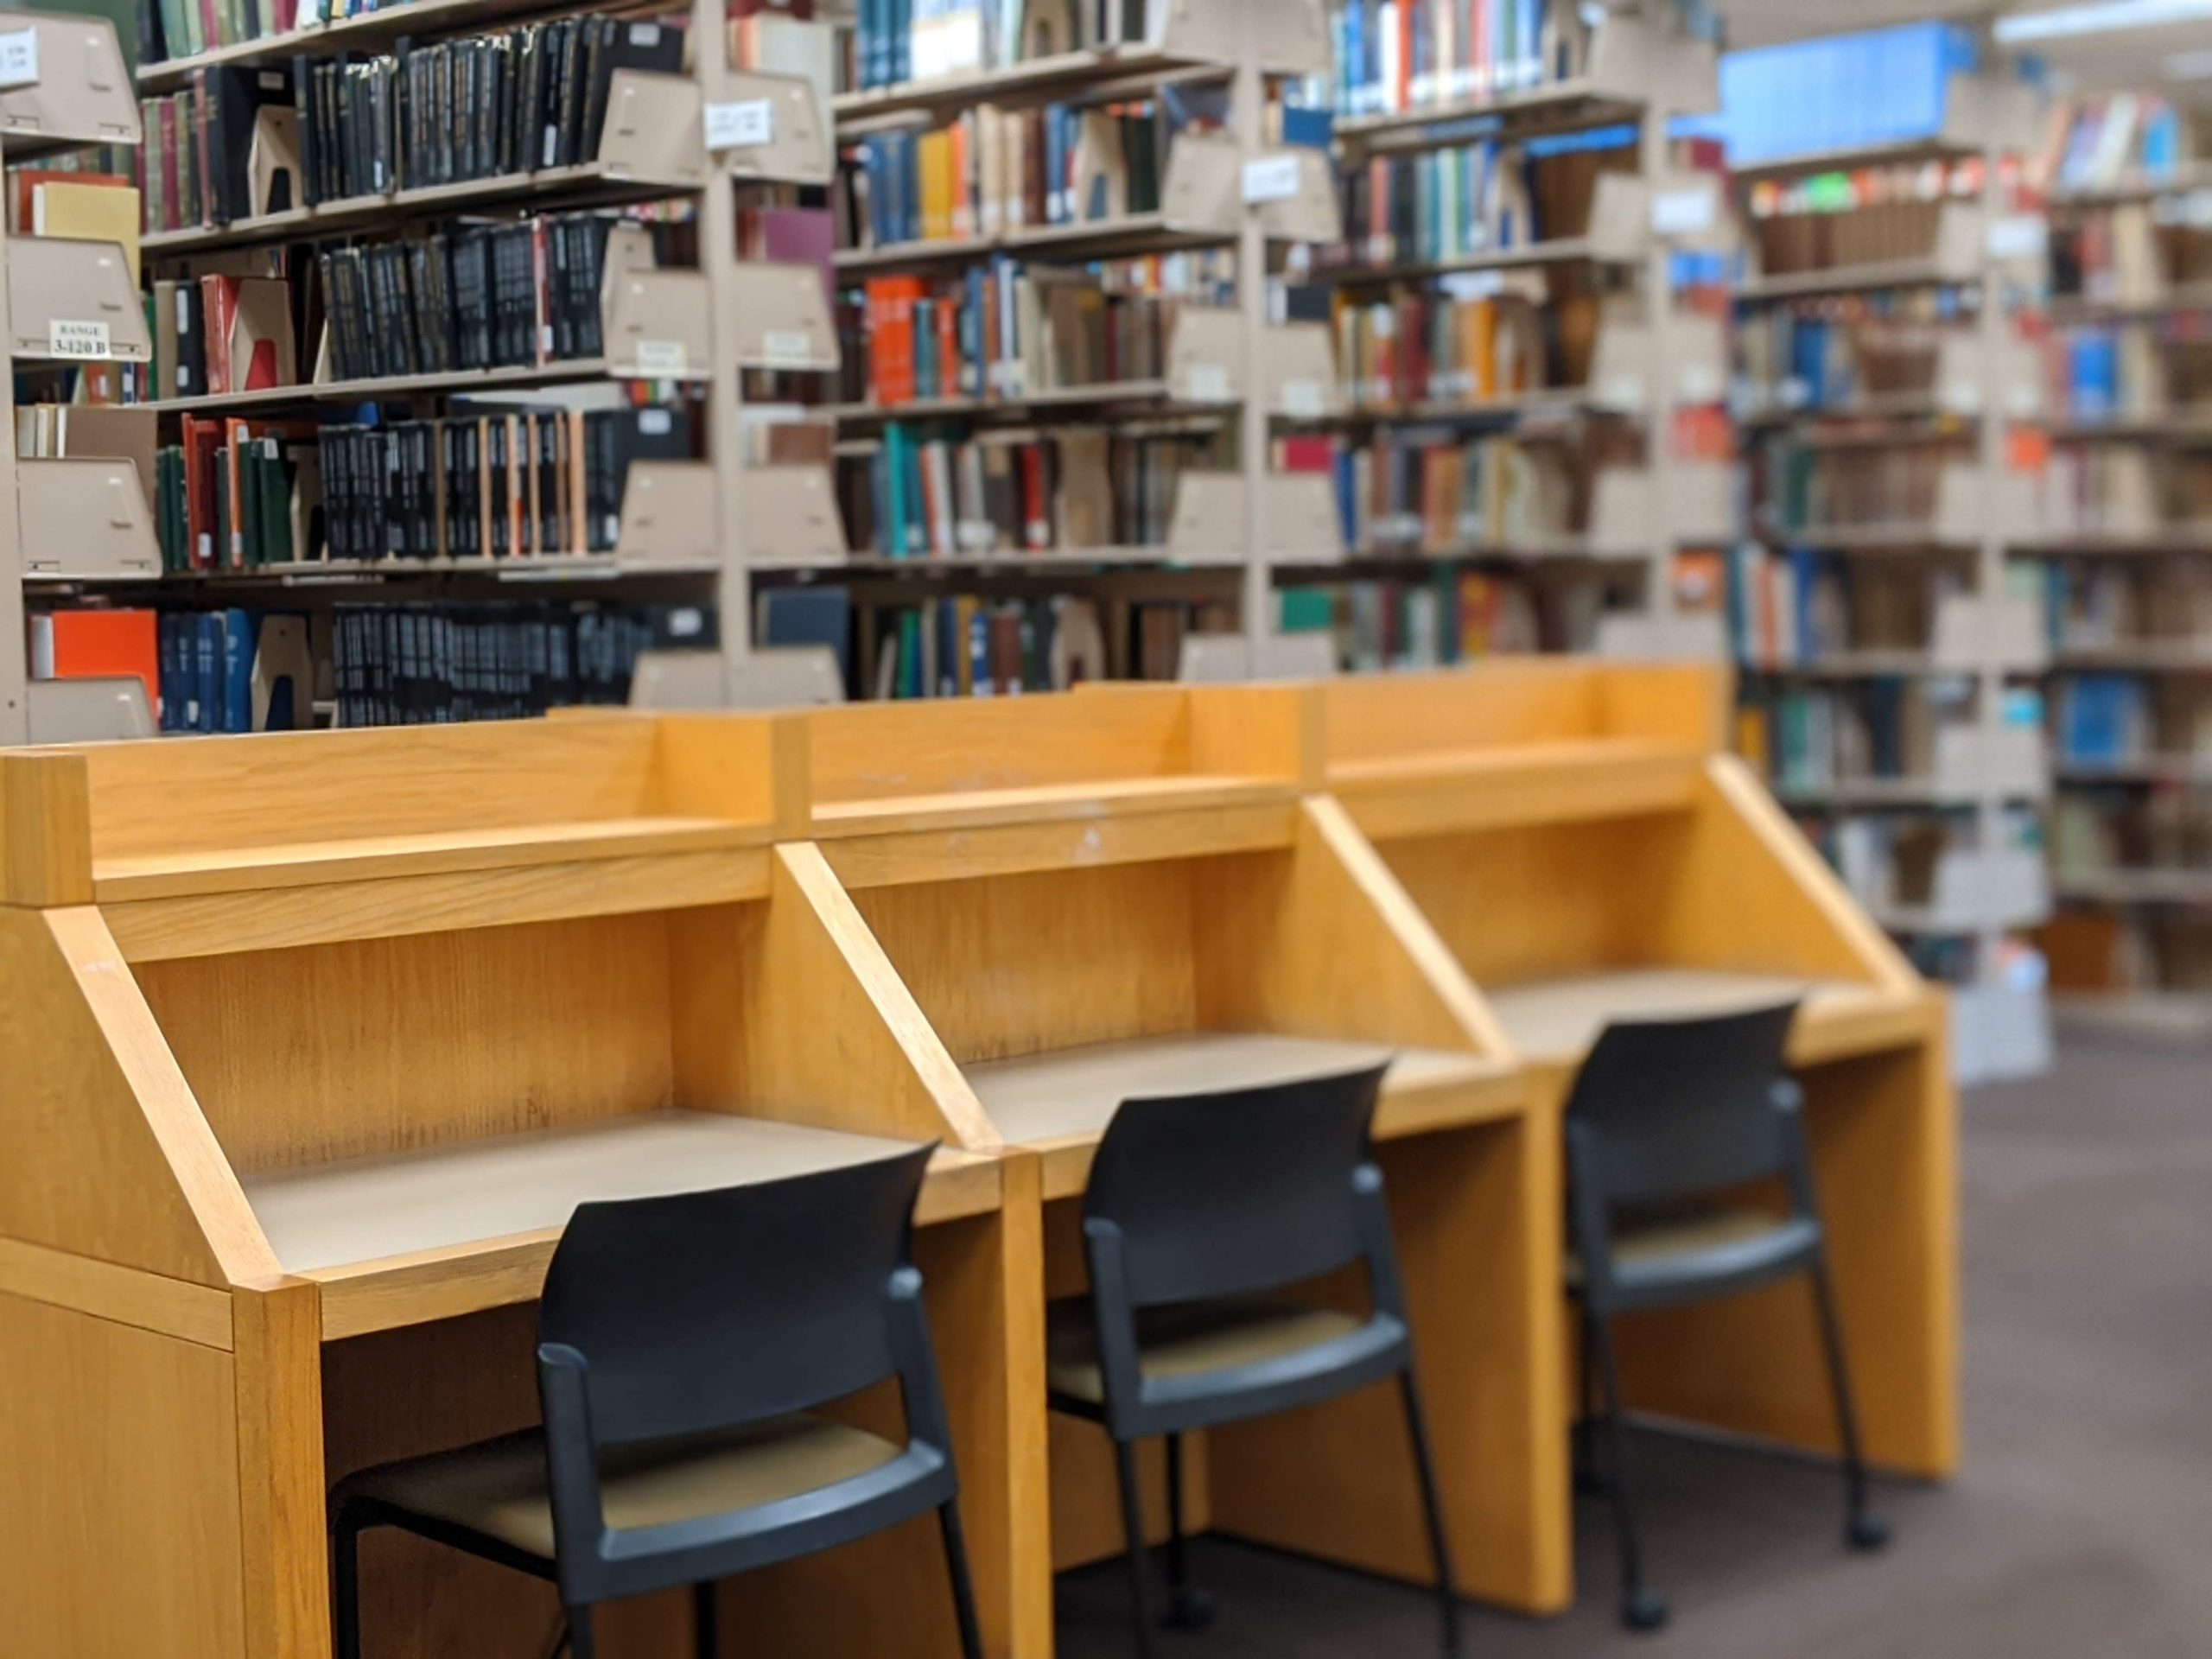 hodges library study carrels at ut knoxville